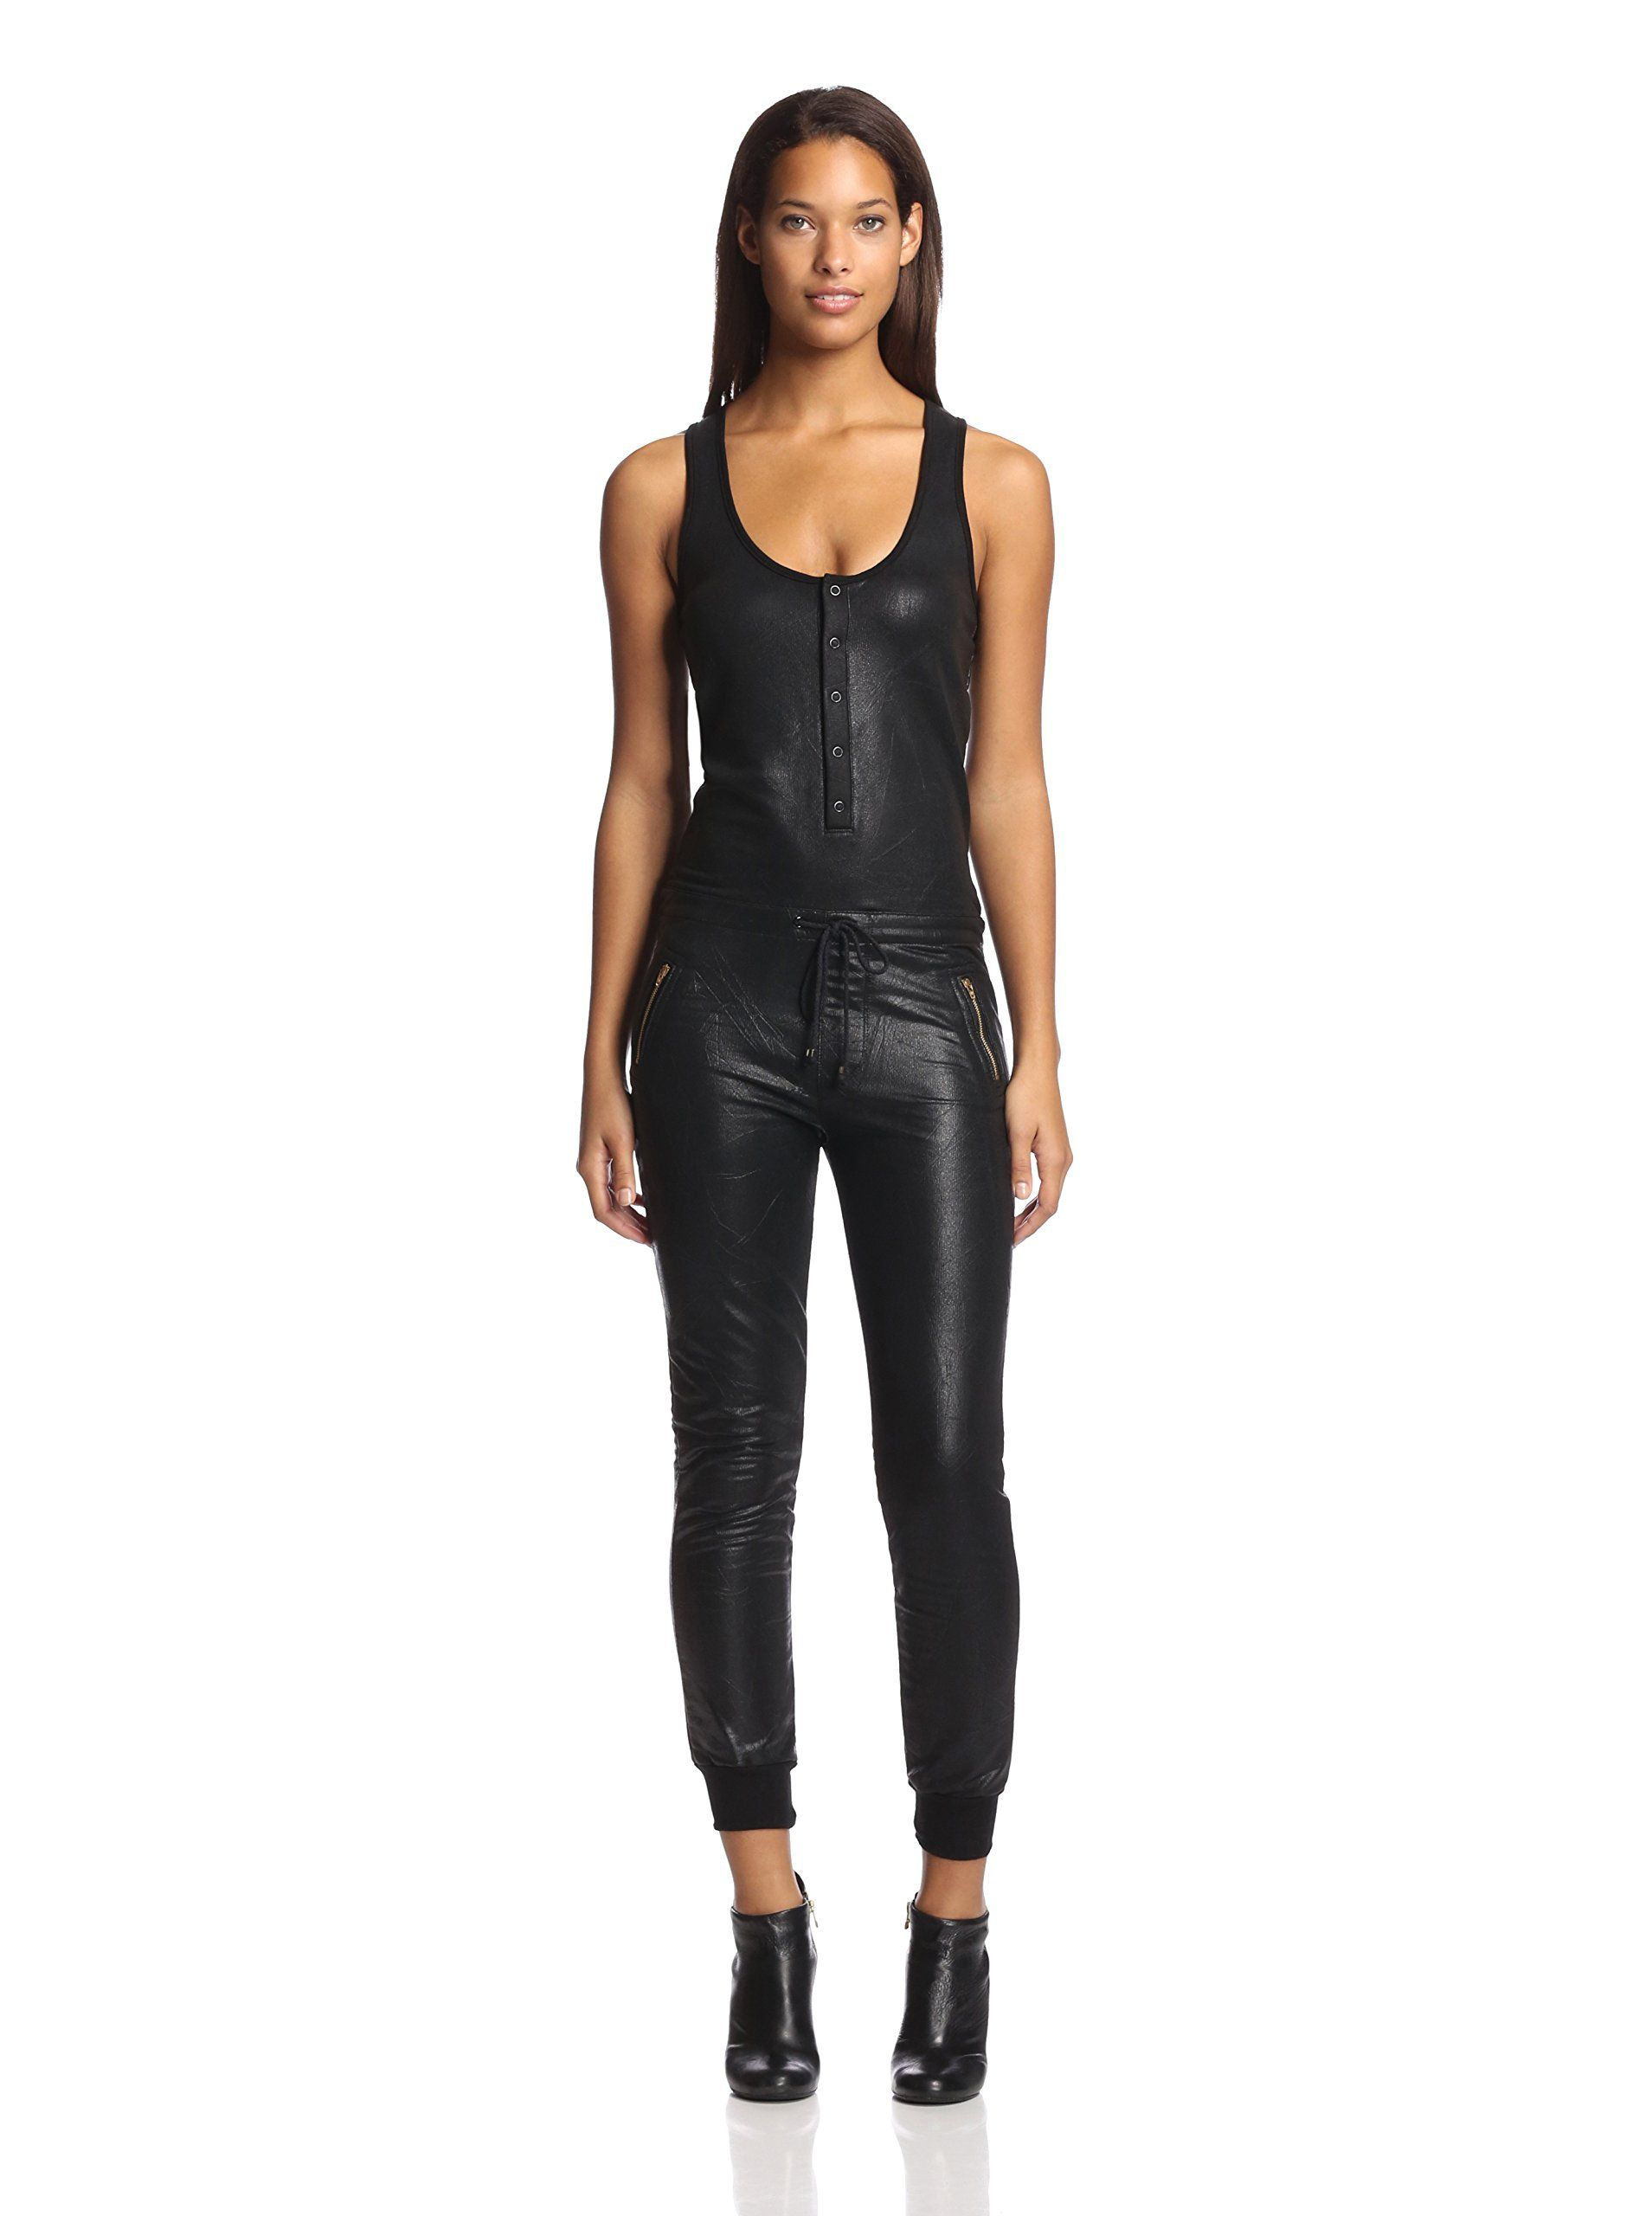 MODERNSAINTS Women's Jog Jumper at MYHABIT. This French Terry jumper serves every purpose that that leather would without the care concerns. how perfect with this be under a chunky knit crop sweater?